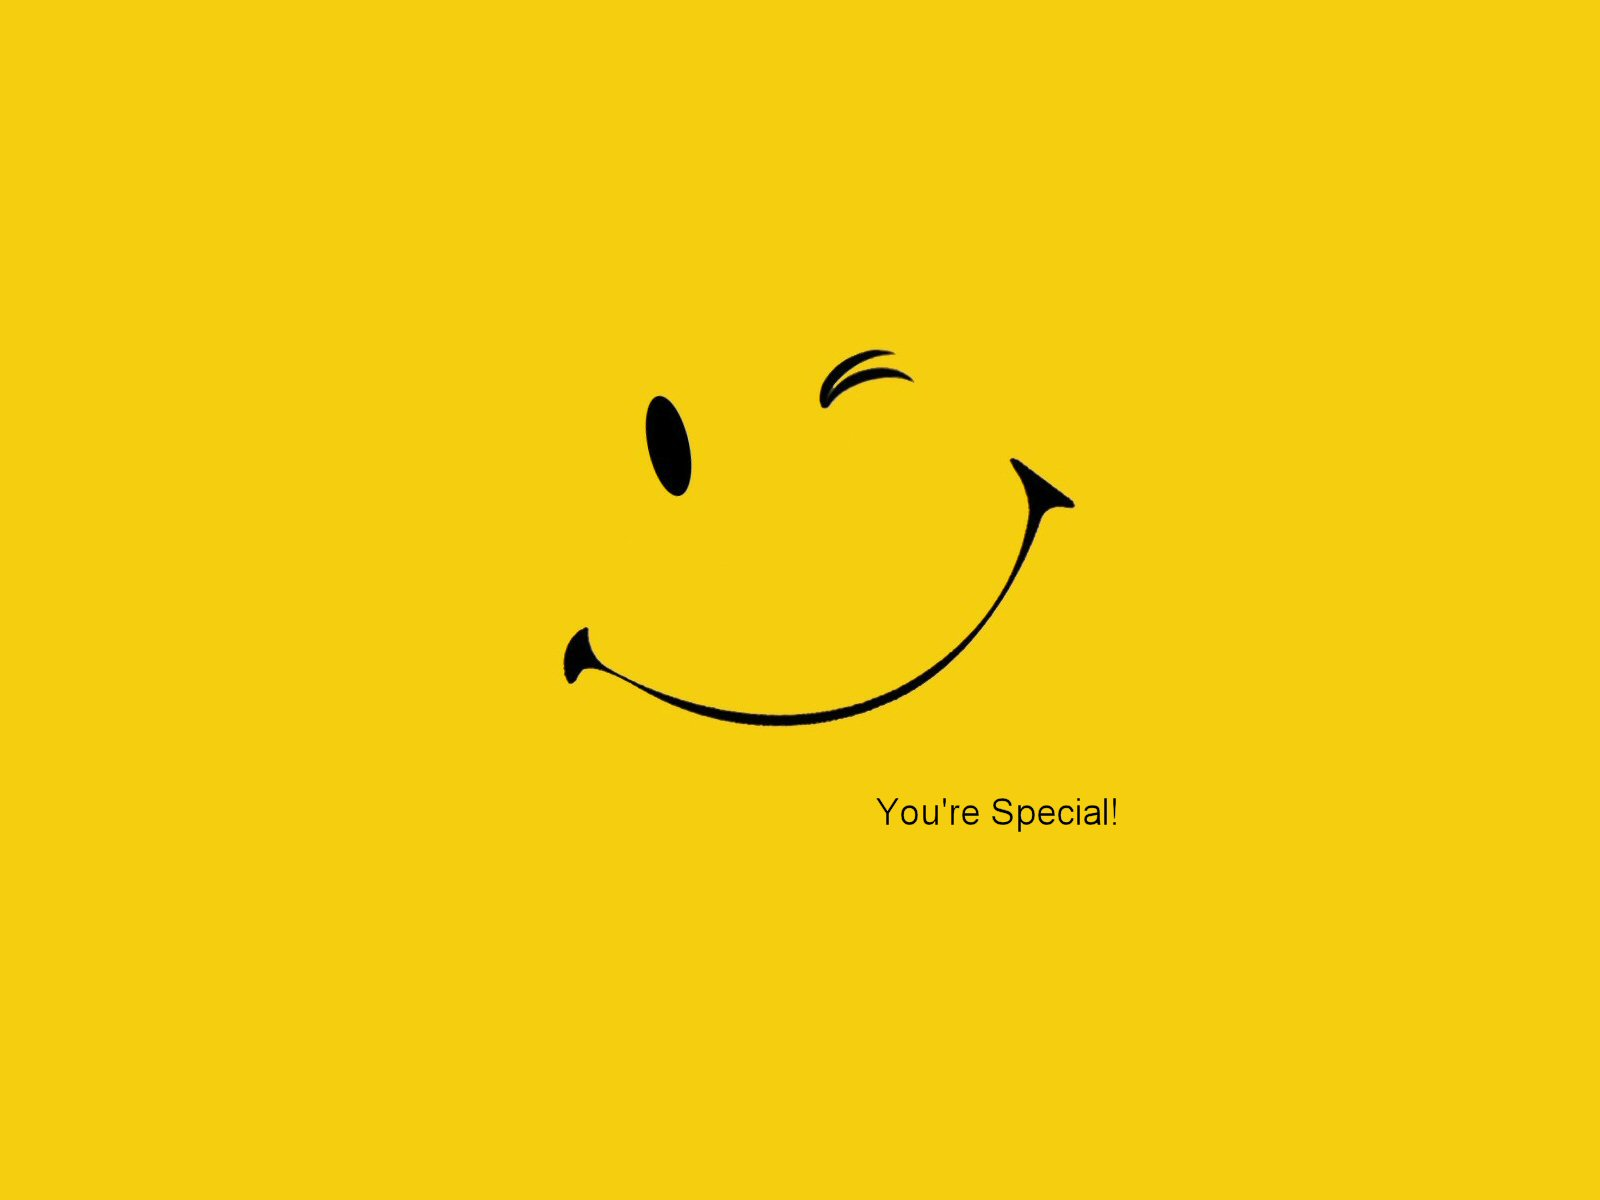 smiley-face-wallpaper-012.jpg (43 KB) (File Type Details). Congrats!